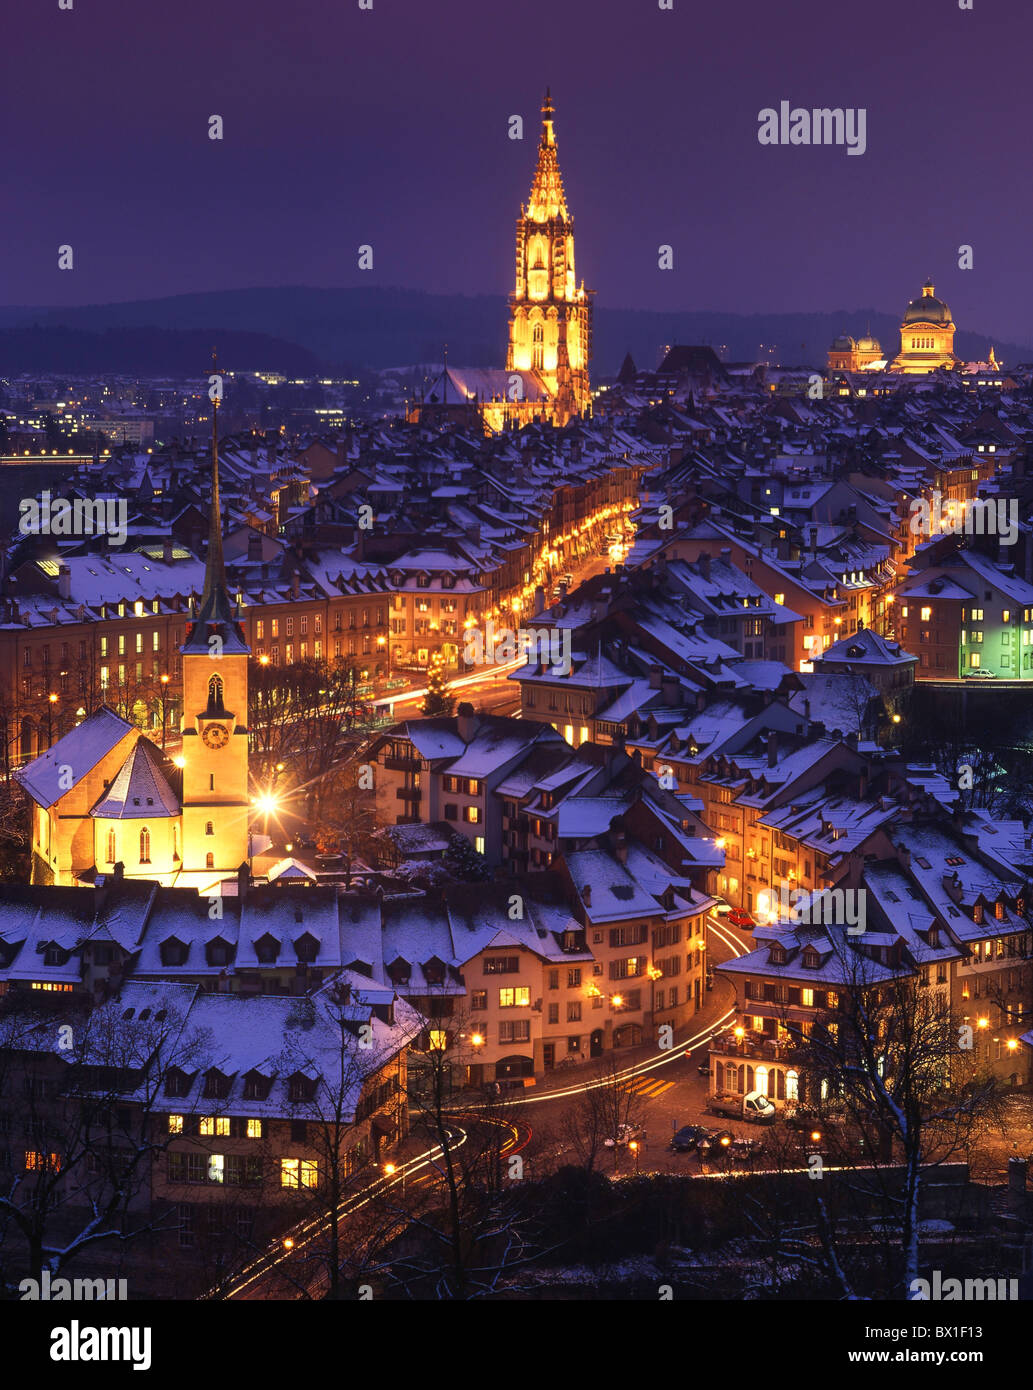 bern old town night winter stockfotos bern old town. Black Bedroom Furniture Sets. Home Design Ideas